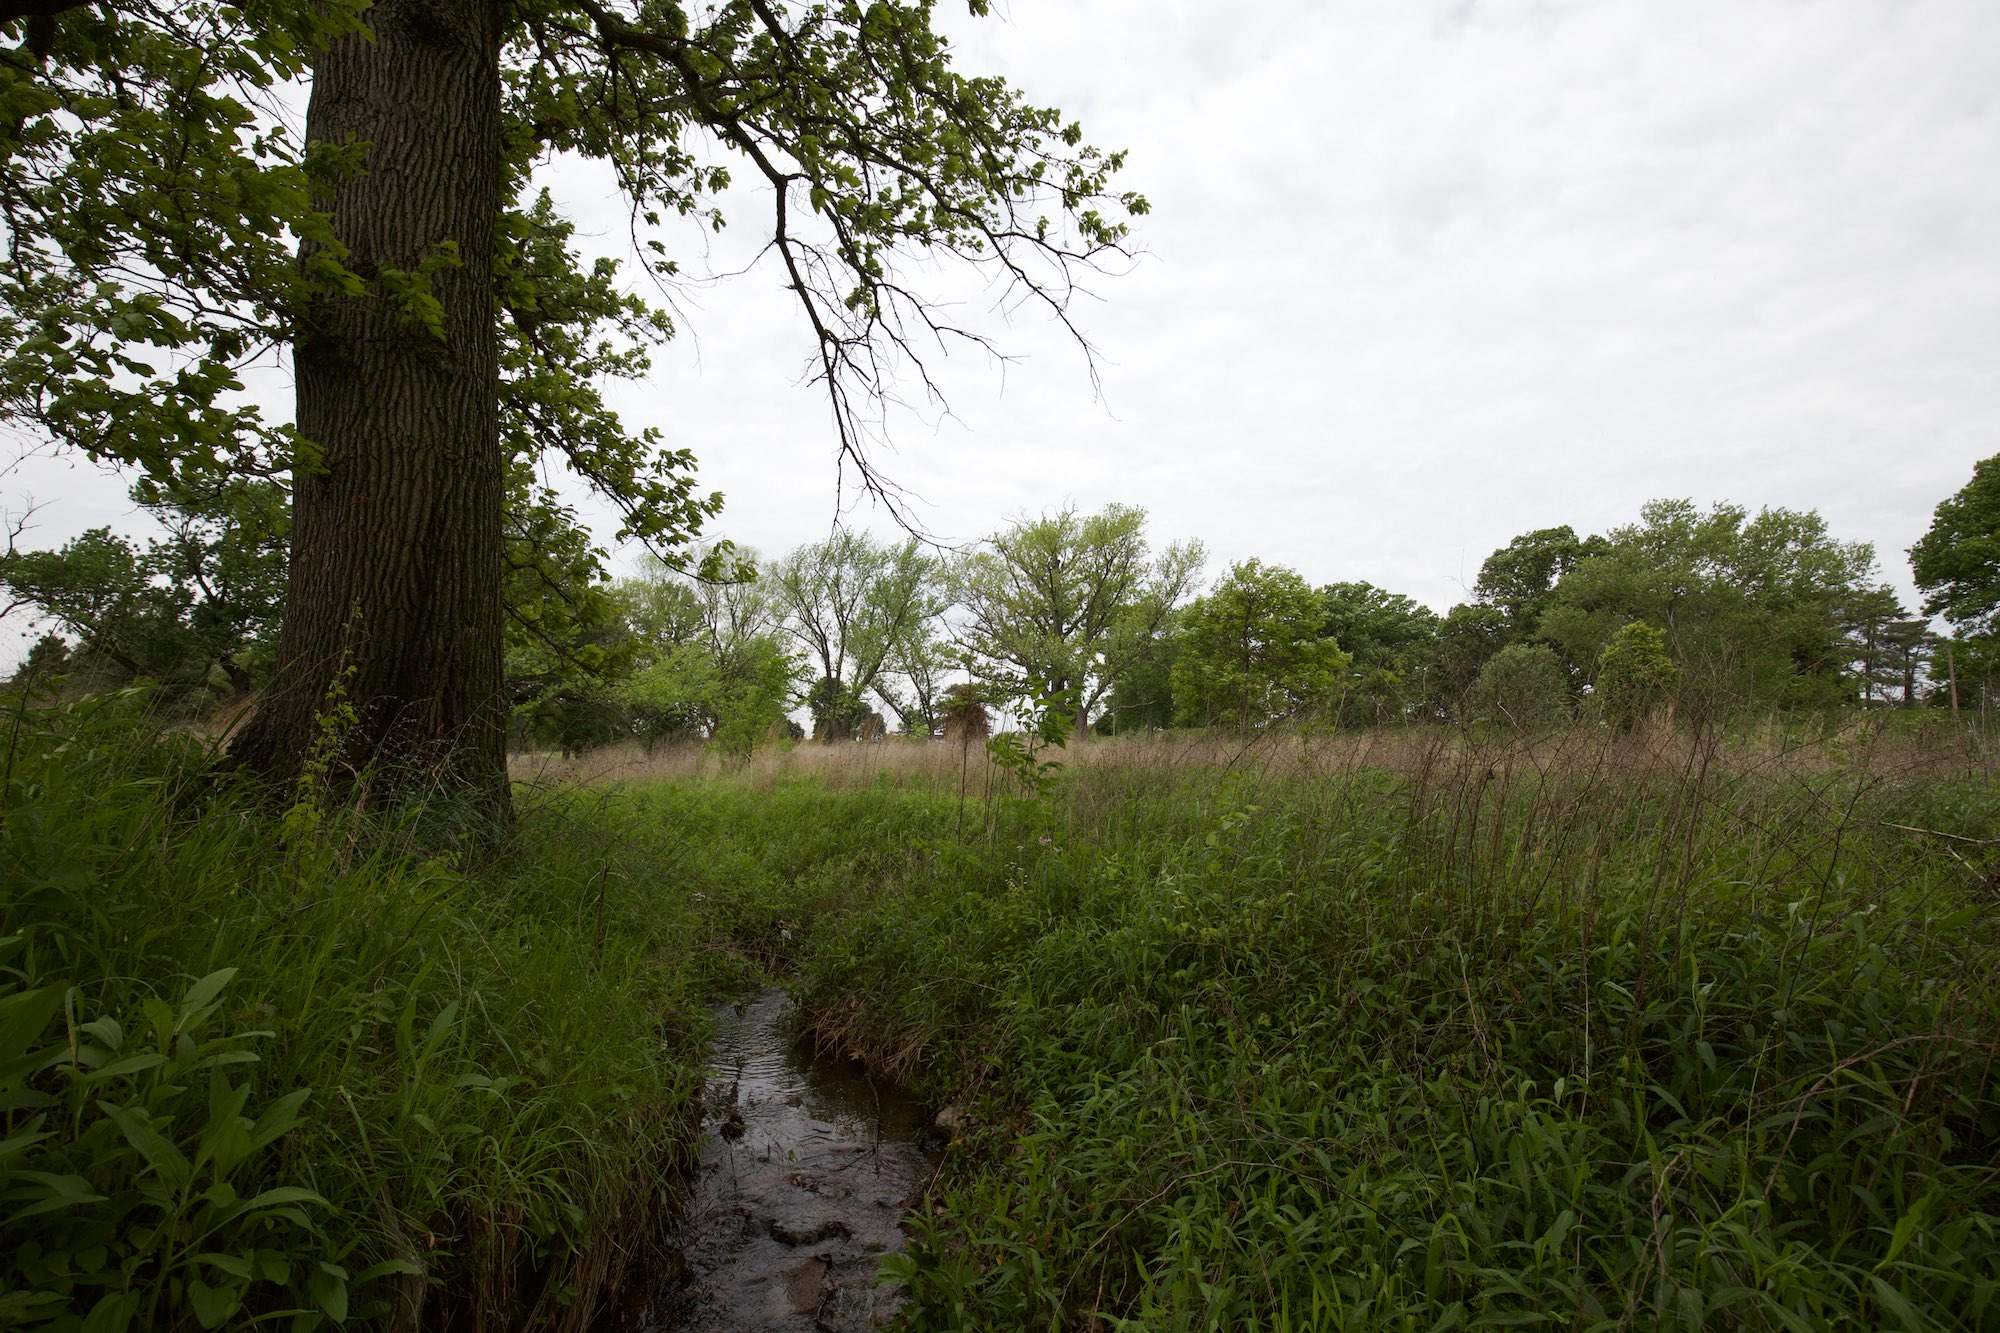 In the Hidden Creek Savanna by the old oak, I wade the creek. Click on image for more photos.